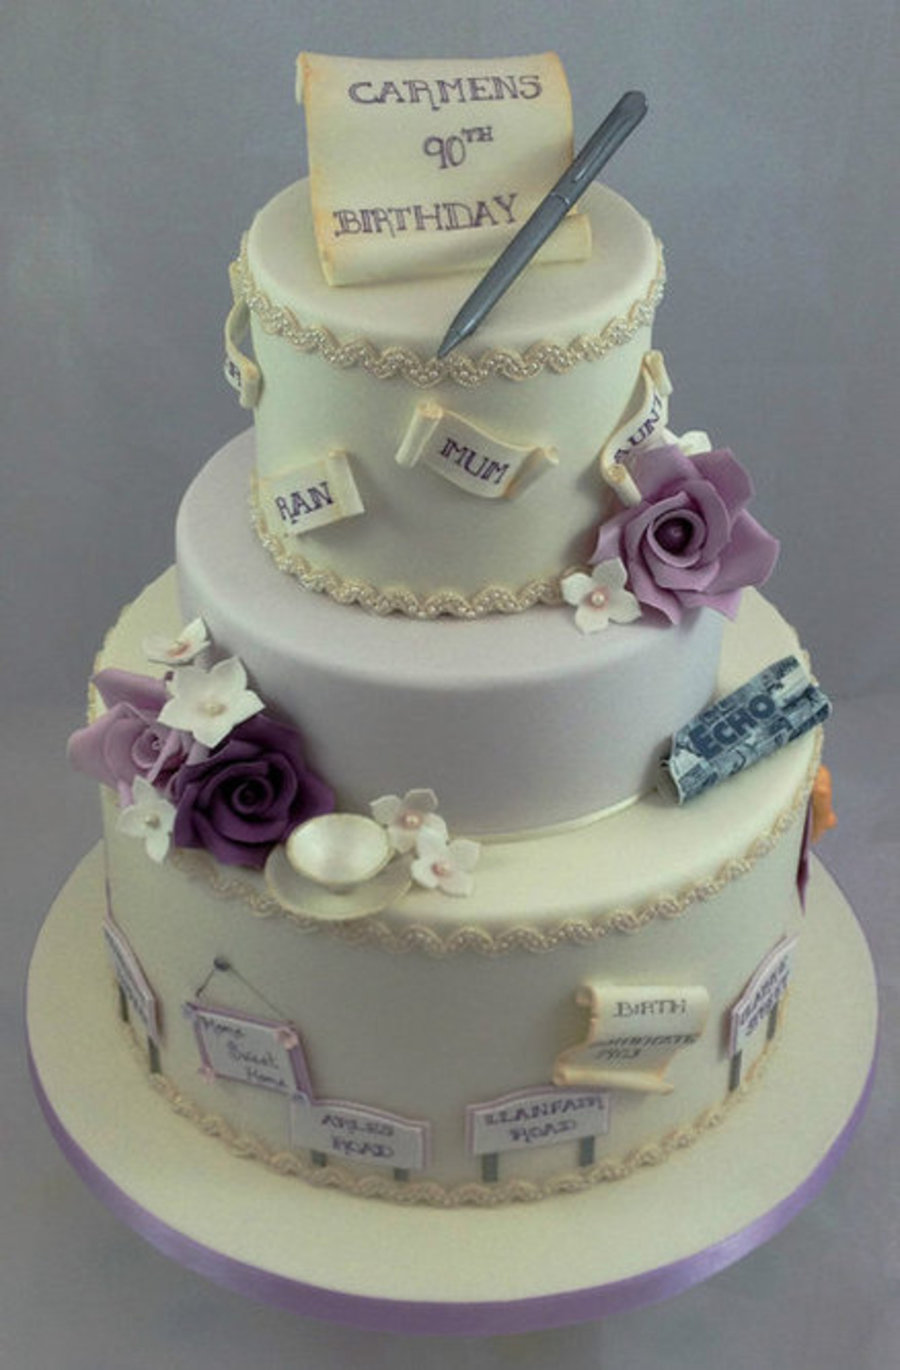 This 3 Tier 90Th Birthday Cake Was A Very Special Order For Me As The Client And Her Family Had Thought Carefully About Design Of T